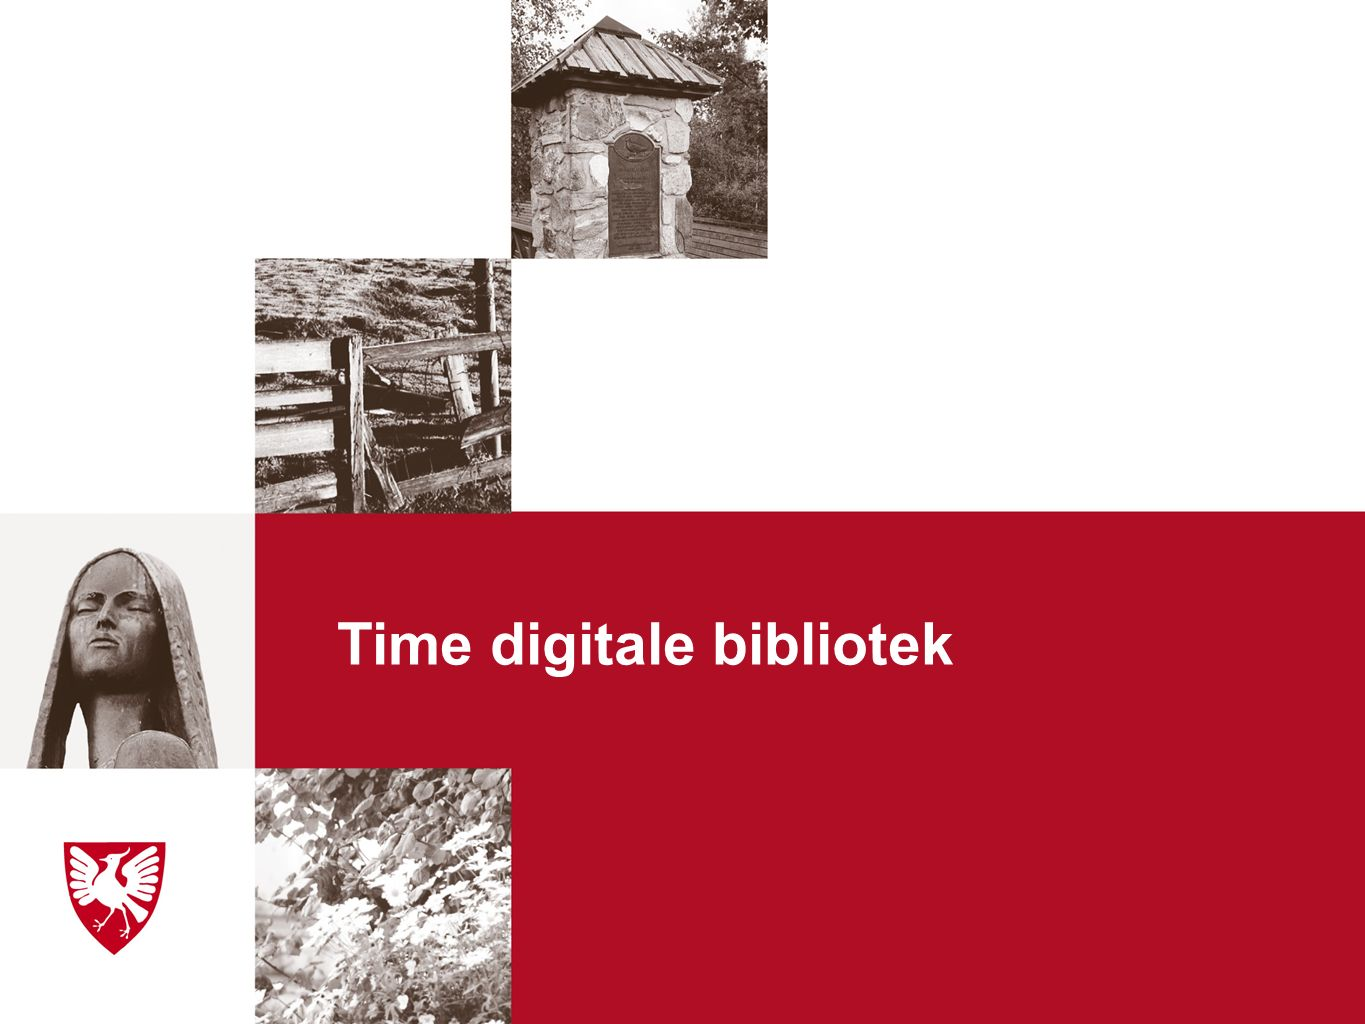 Time digitale bibliotek